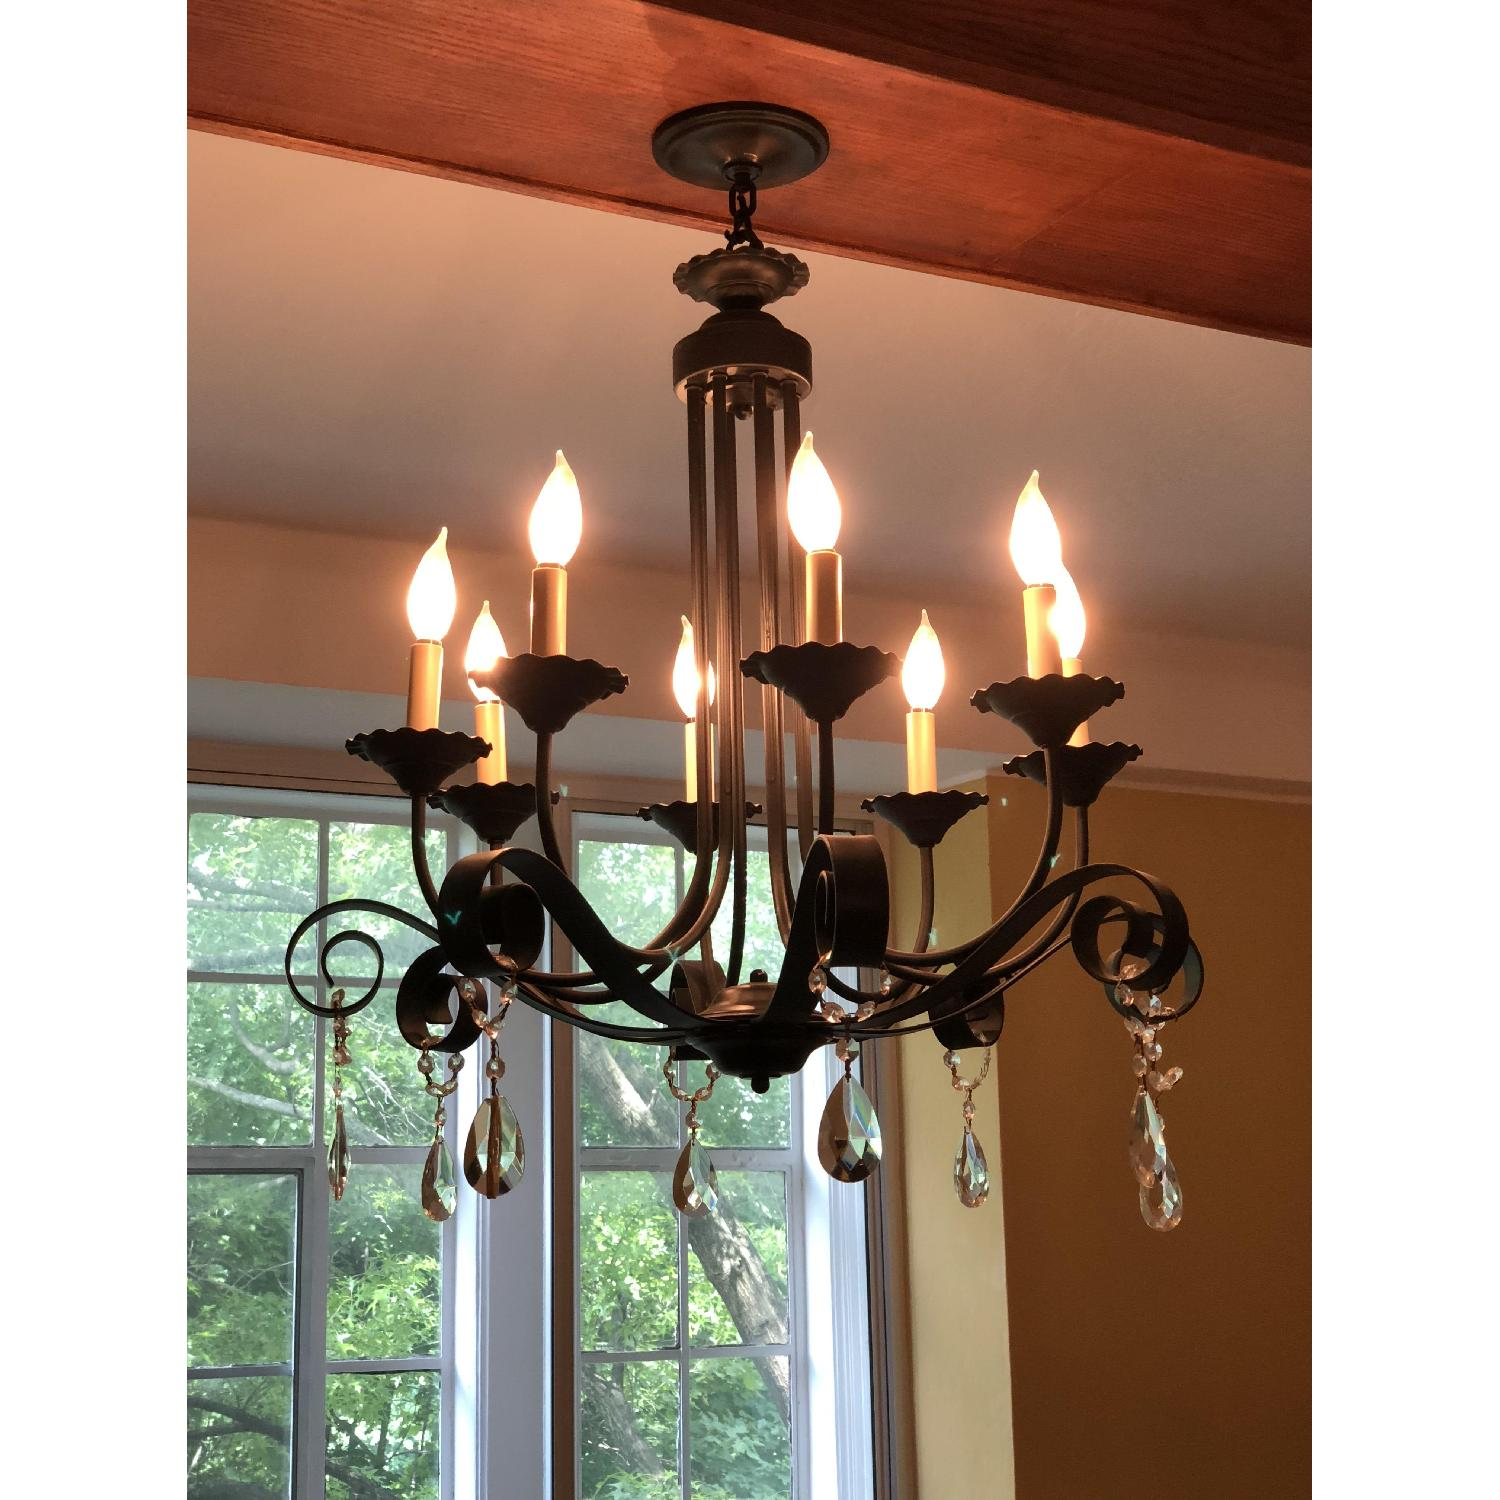 8-Candle Wrought-Iron Crystal-Accented Black Chandelier